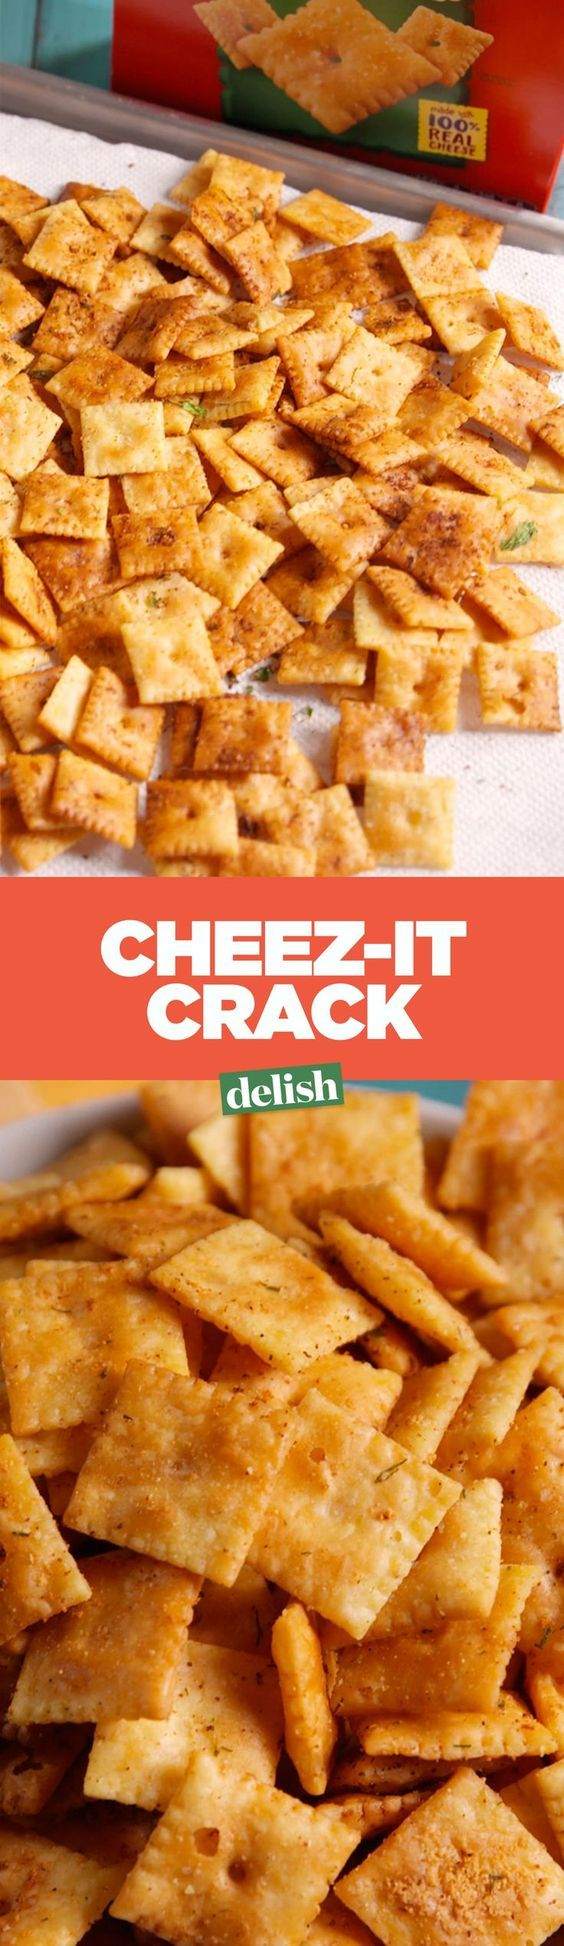 Cheez-It Crack Is This Football Season's New Chex Mix